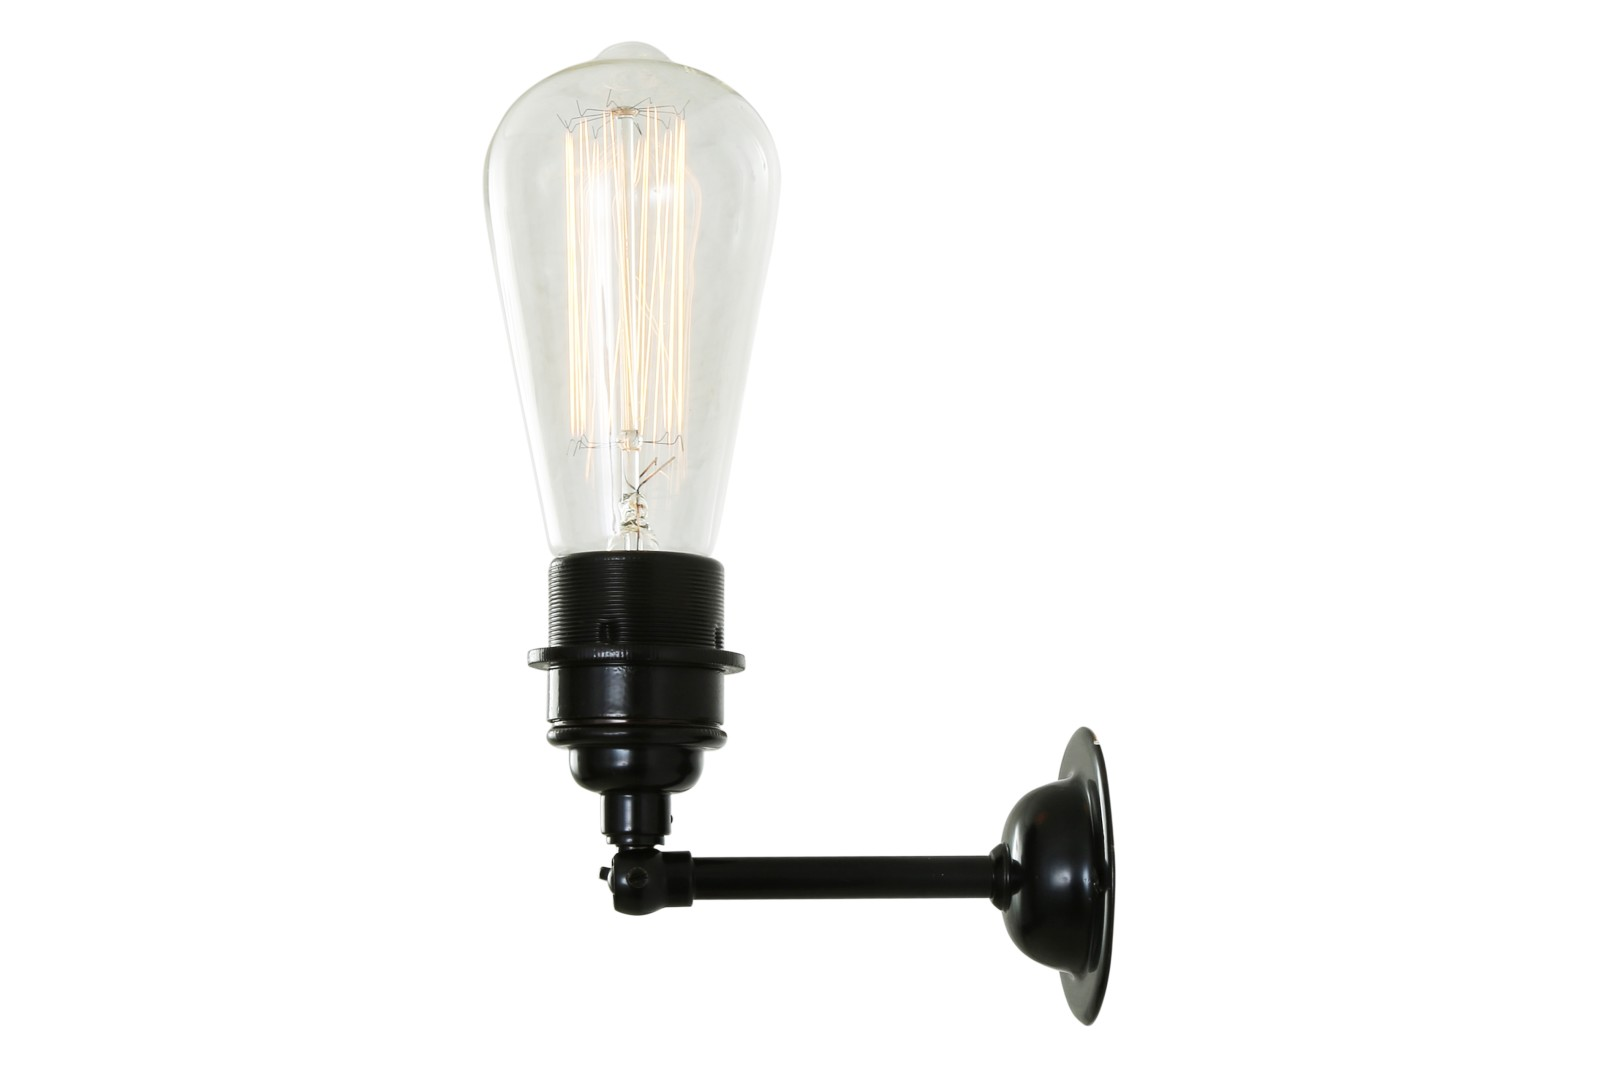 Lome Vintage Minimalist Wall Light Powder Coated Black